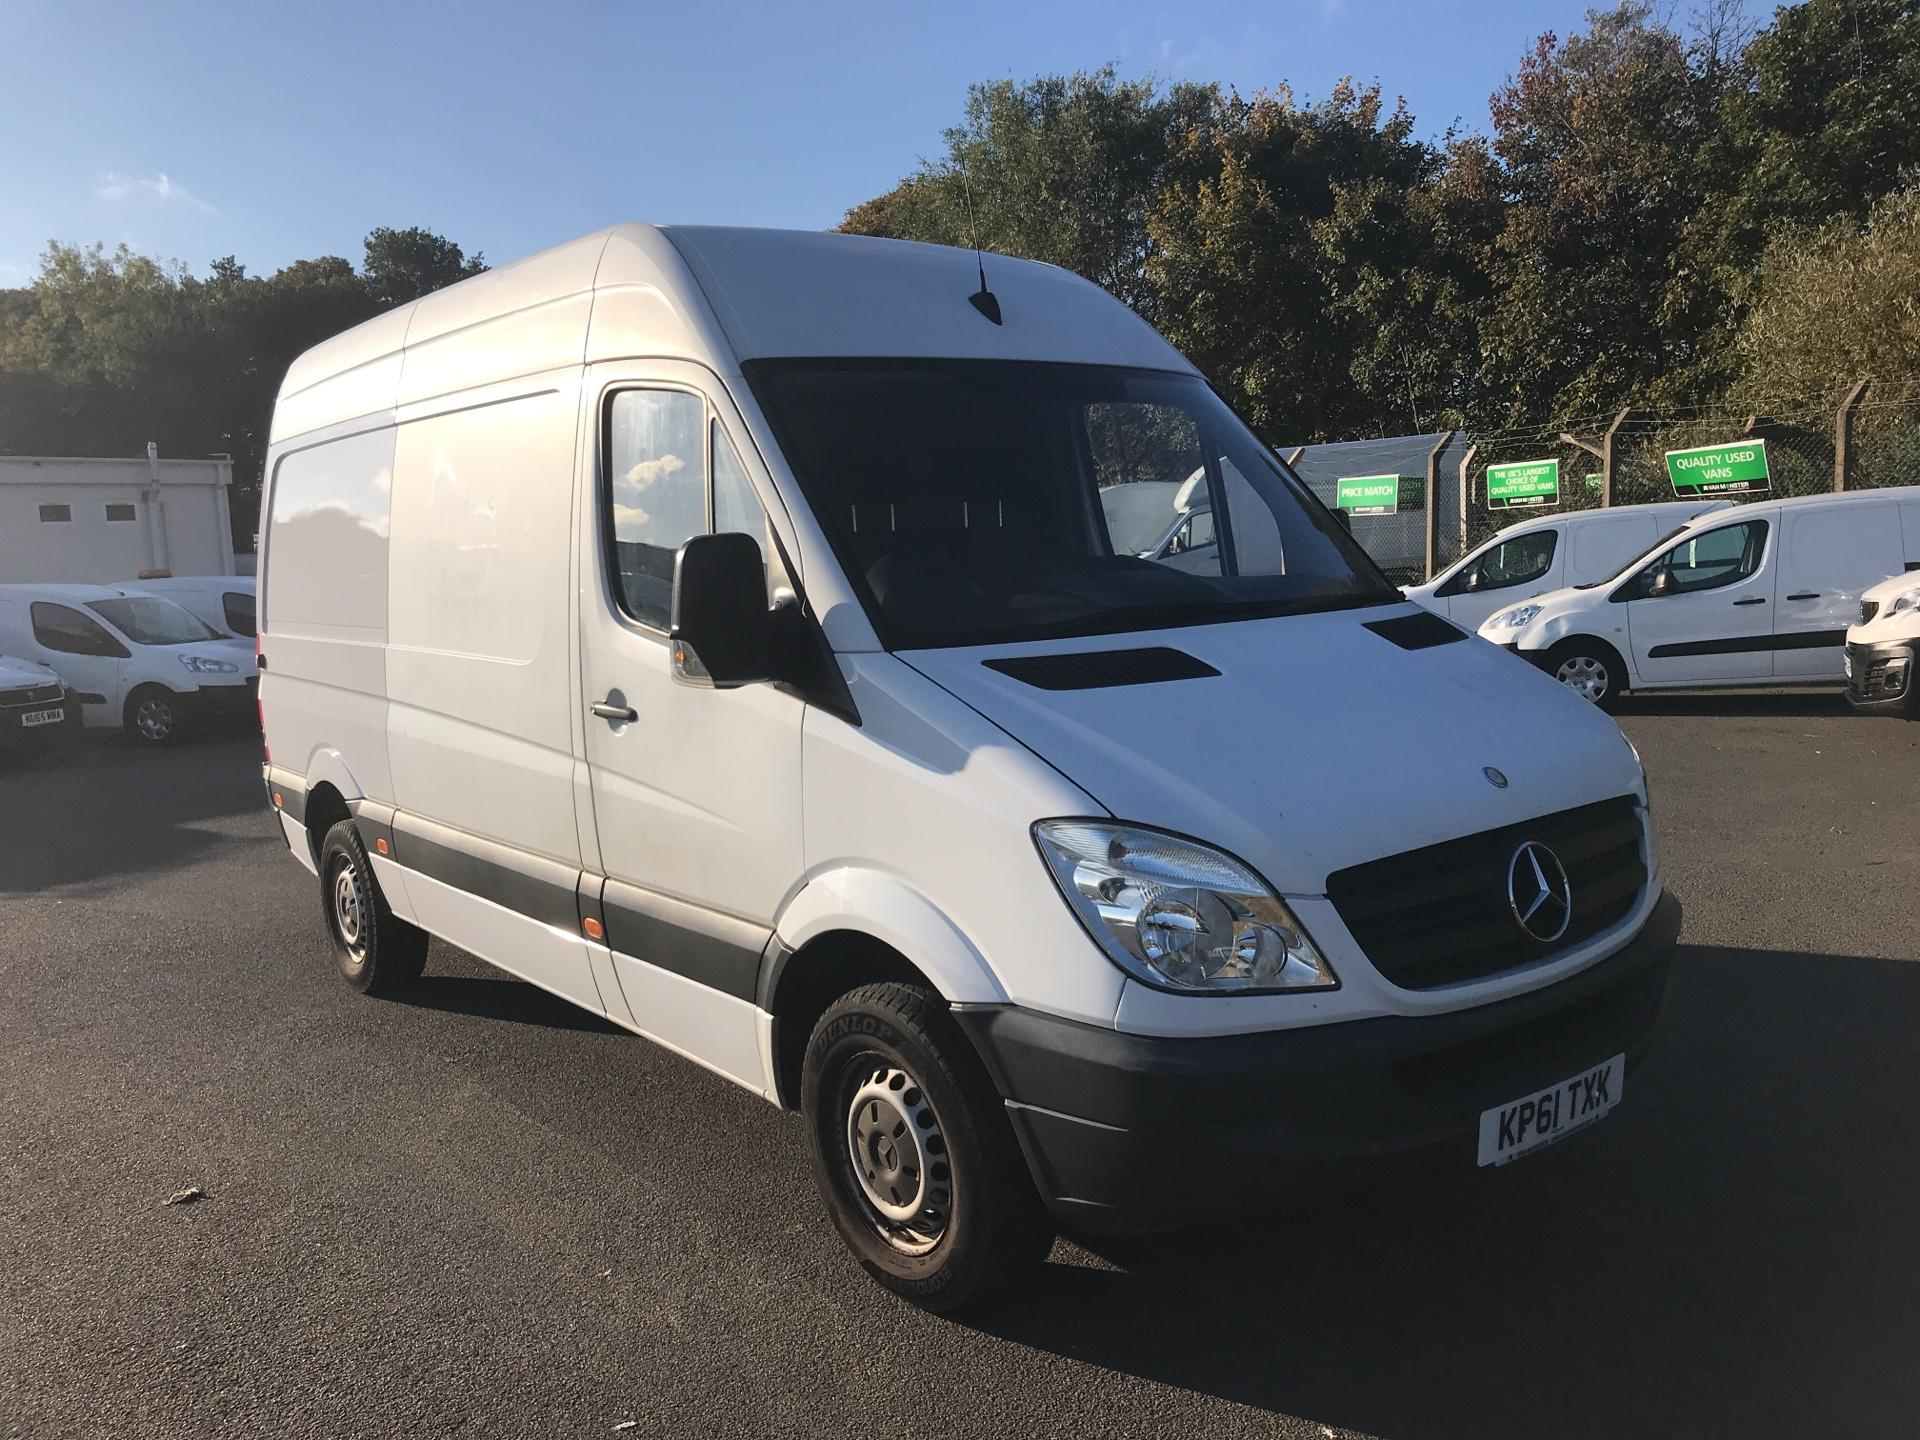 2011 Mercedes-Benz Sprinter  313 CDI MWB  HIGH ROOF VAN EURO 4/5 *VALUE RANGE VEHICLE - CONDITION REFLECTED IN PRICE* (KP61TXK)